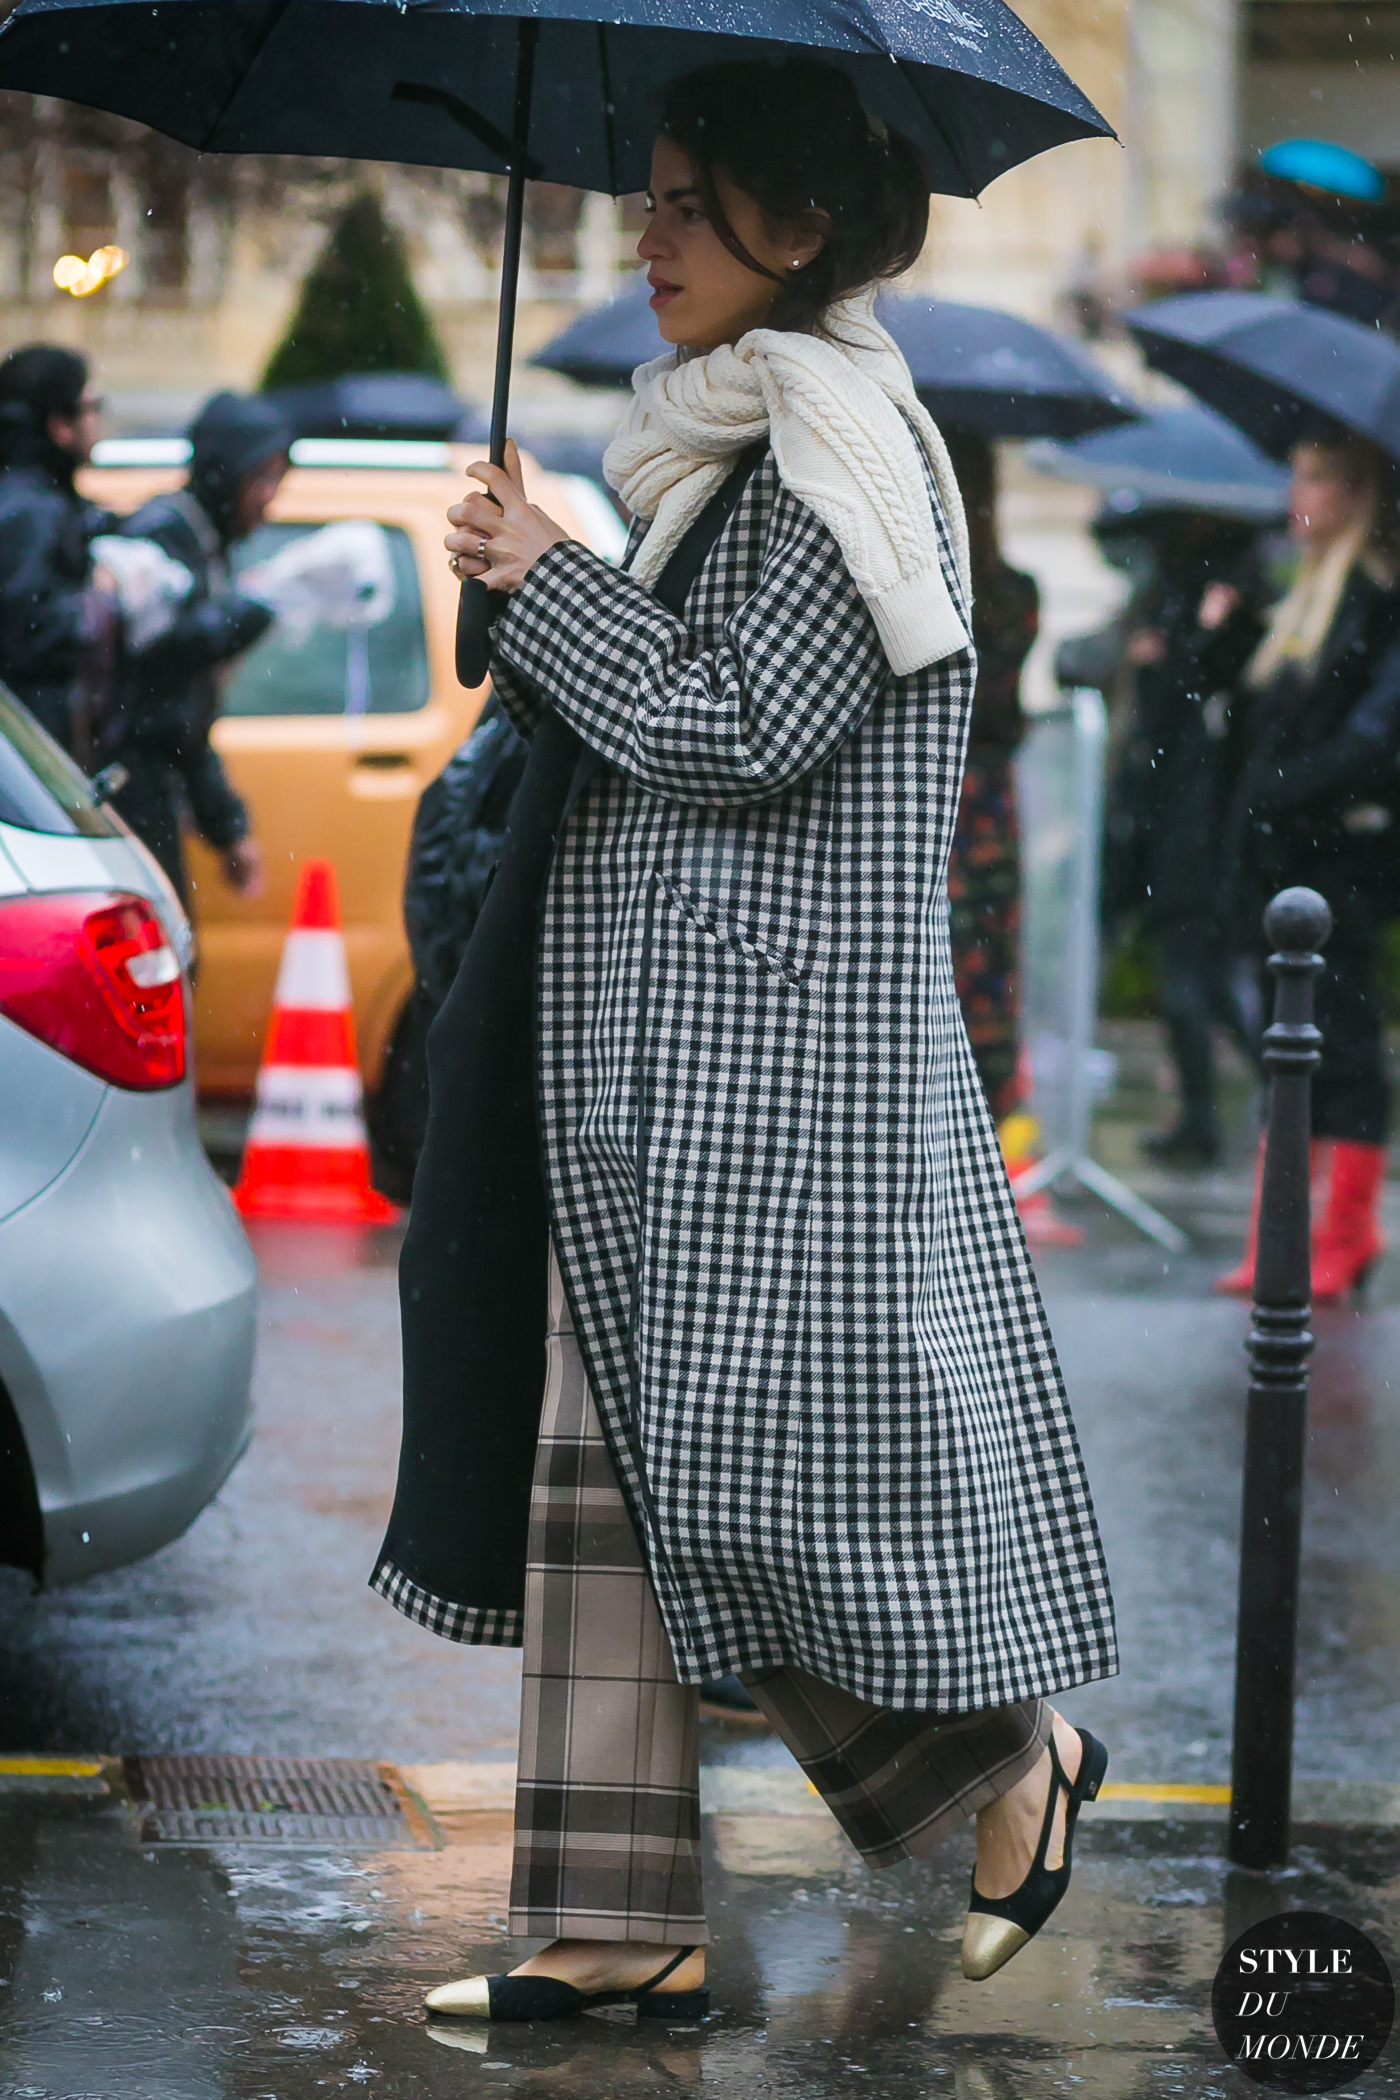 Leandra Medine by STYLEDUMONDE Street Style Fashion Photography0E2A3407